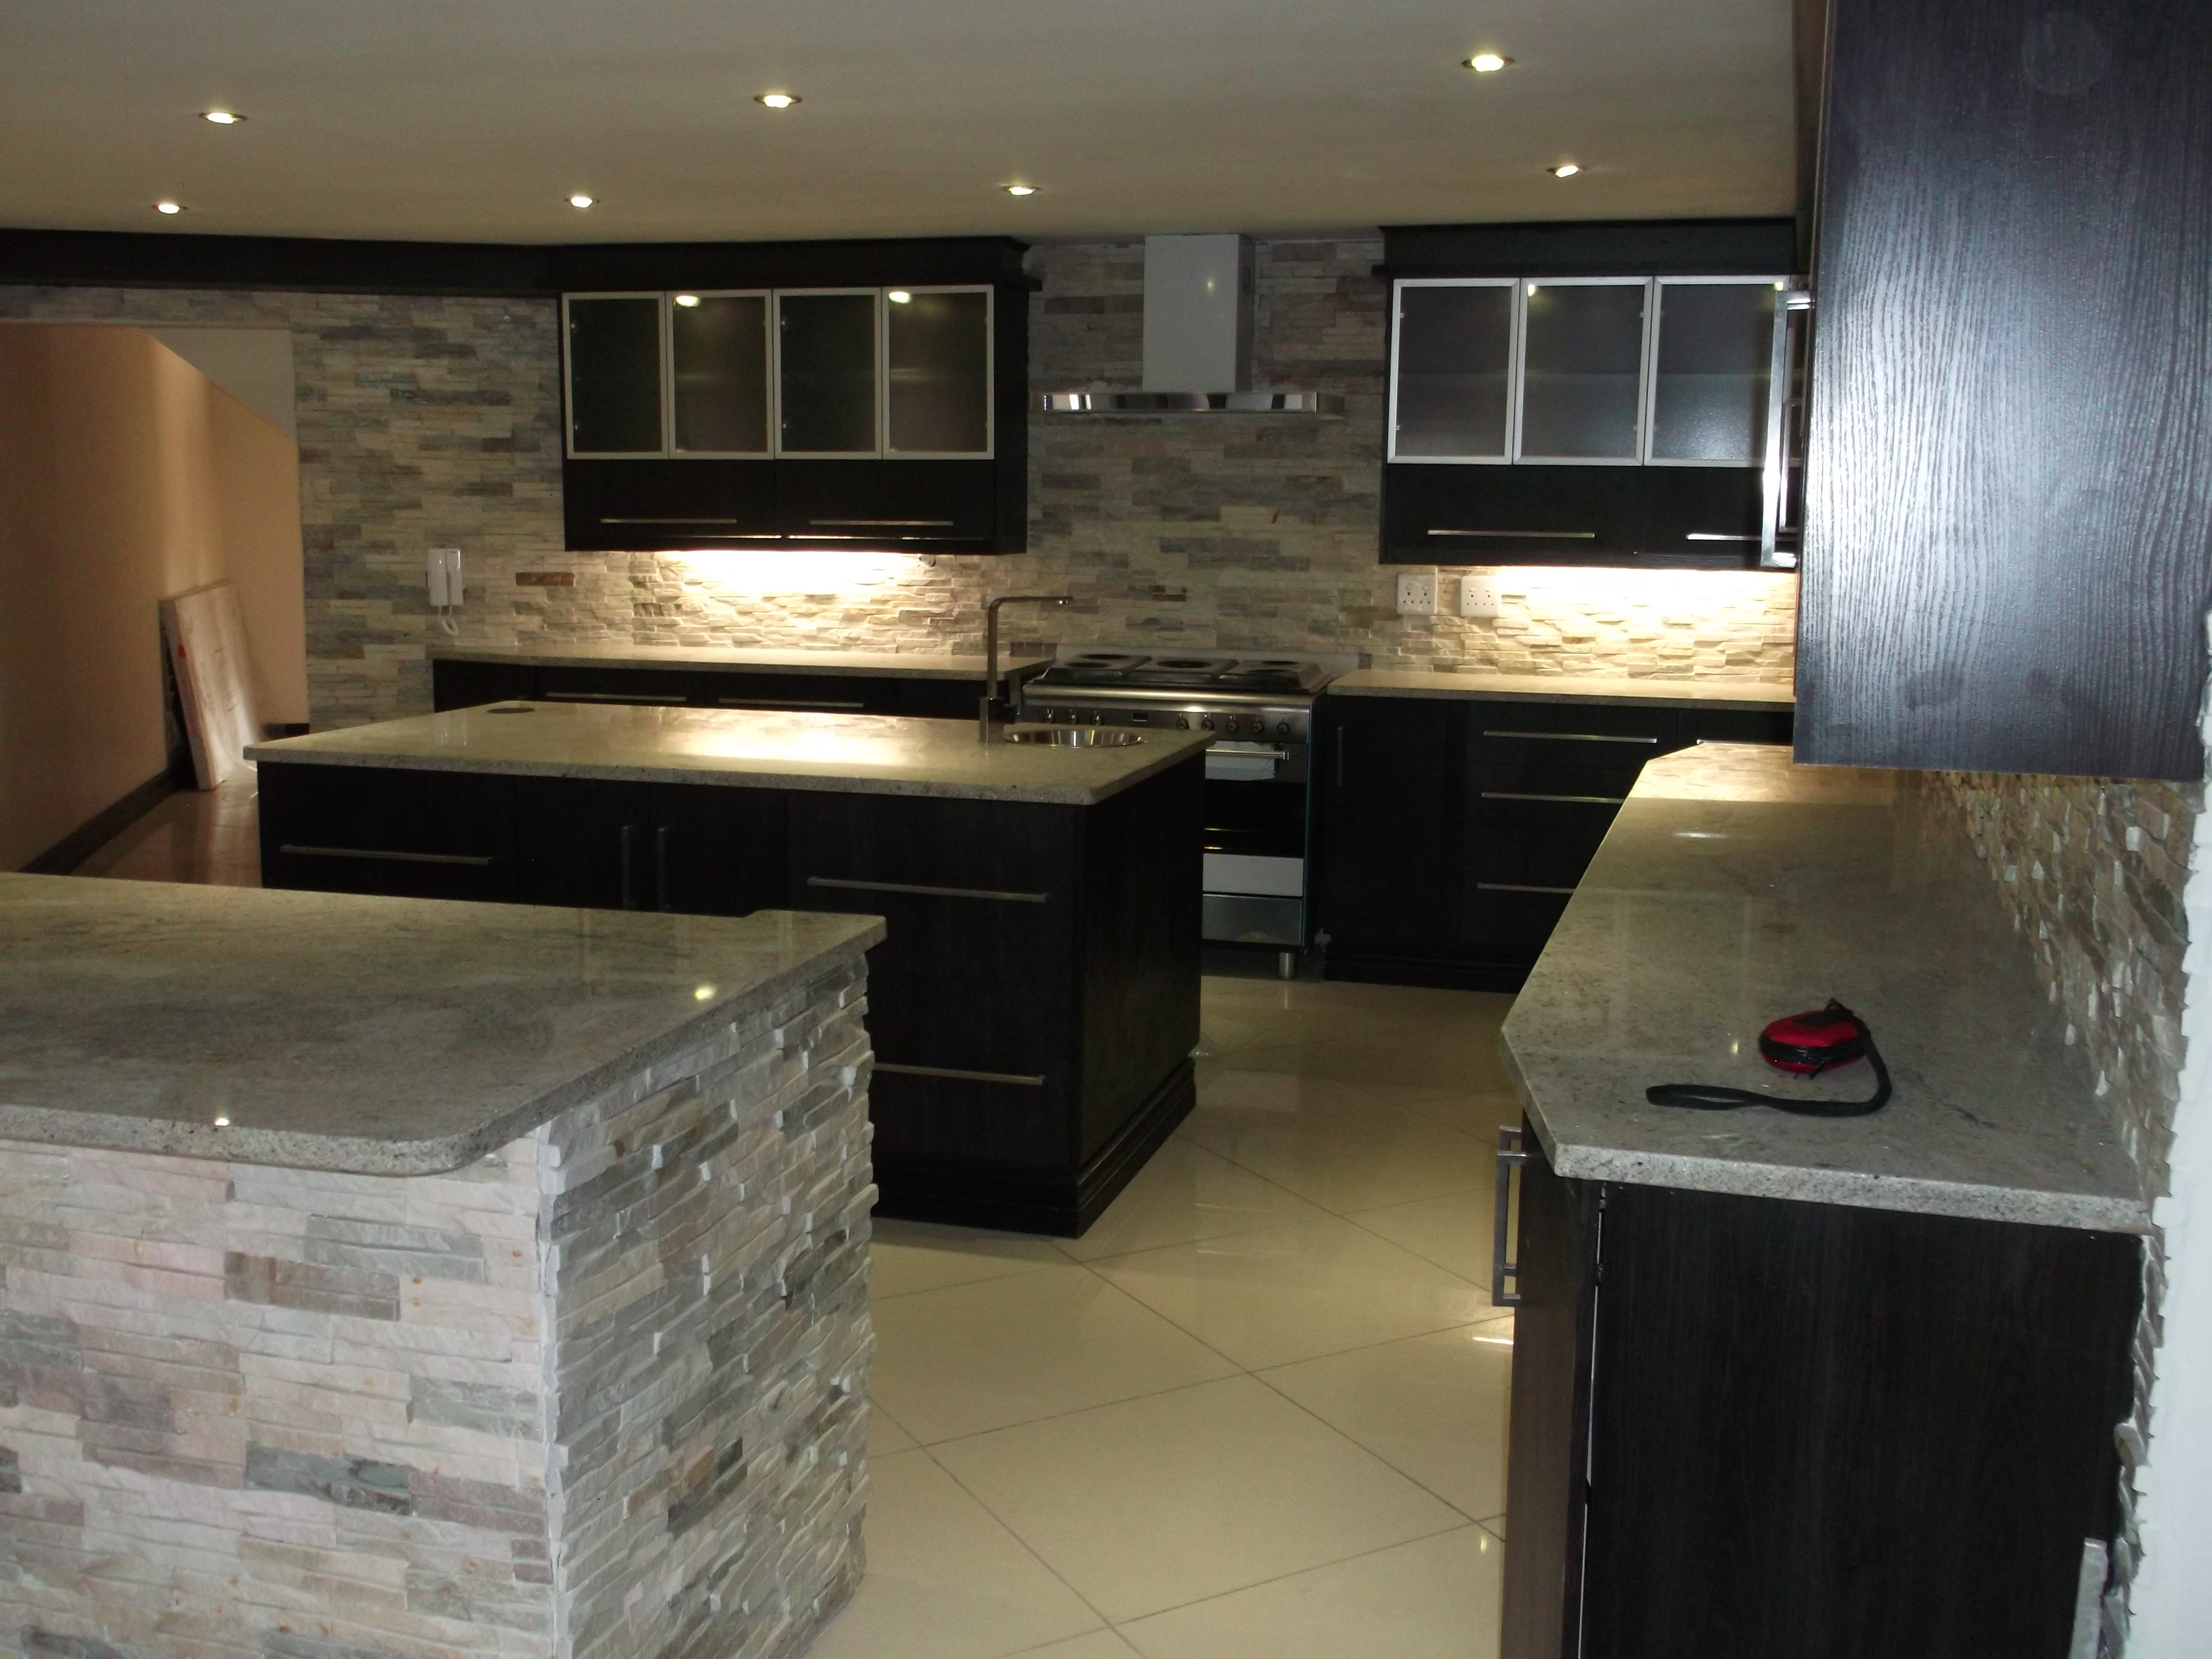 Foil wrap kitchens nico 39 s kitchens for Kitchens pretoria